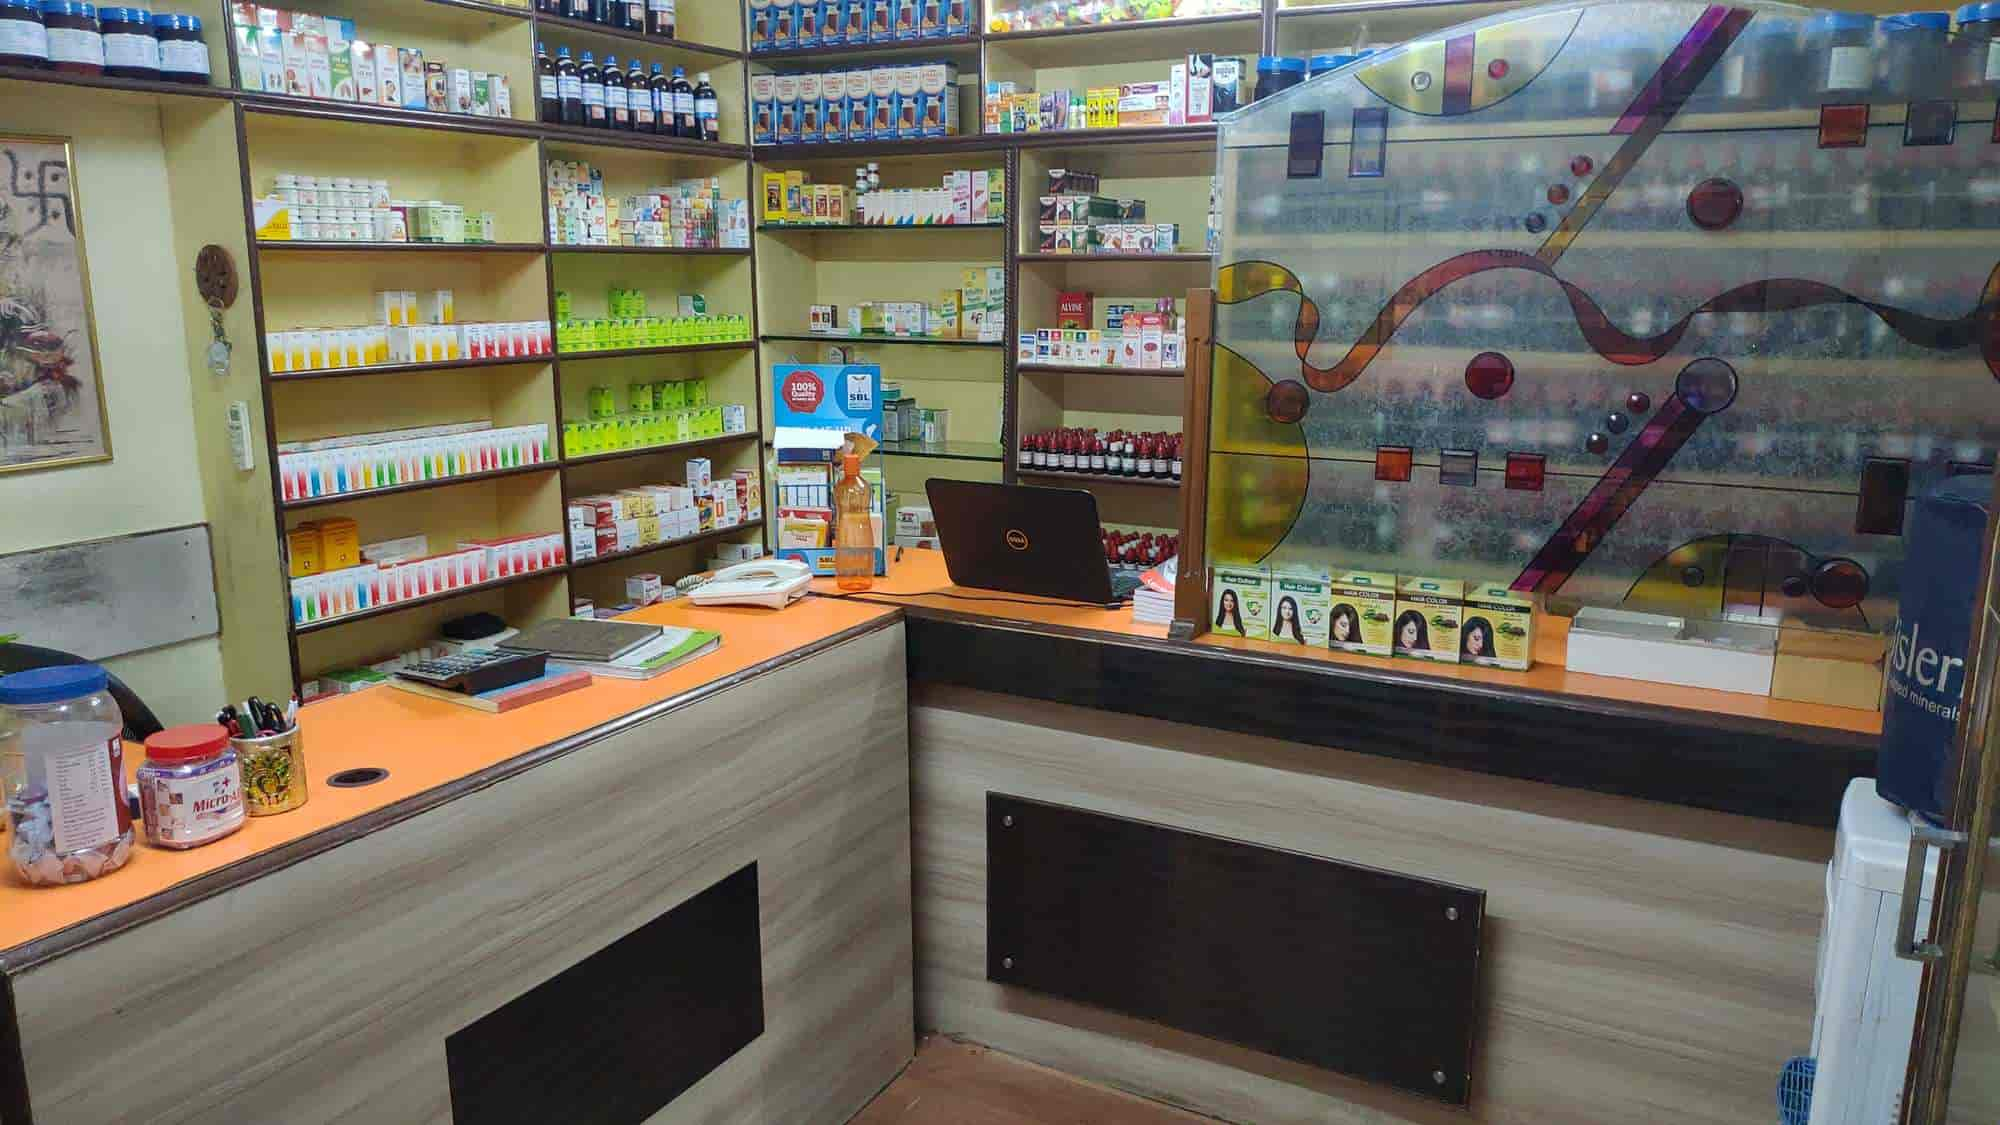 SHRI RAM HOMOEO'S AND CLINIC, M I Road - Homeopathic Doctors in